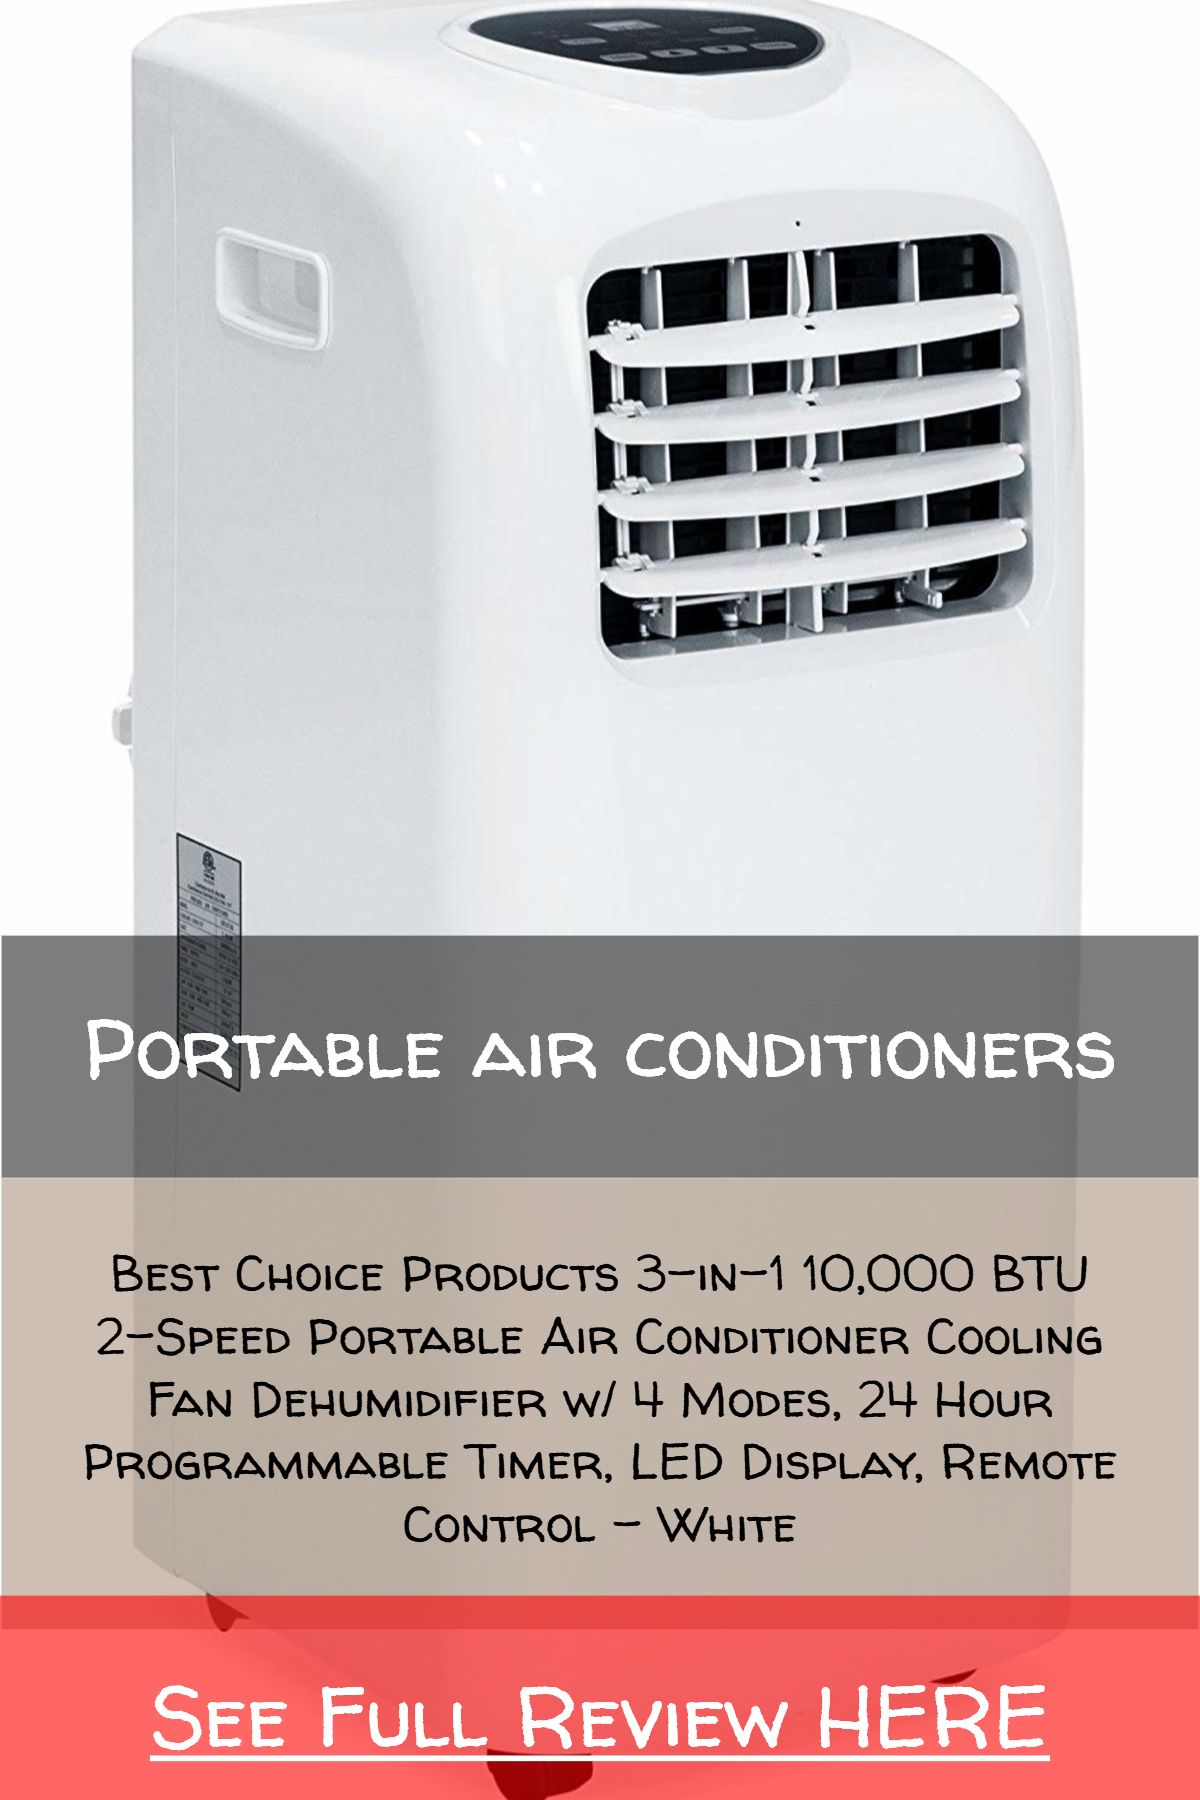 Portable Air Conditioners Best Choice Products 3 In 1 10 000 Btu 2 Speed Portable Air Condi Portable Air Conditioner Portable Air Conditioners Remote Control